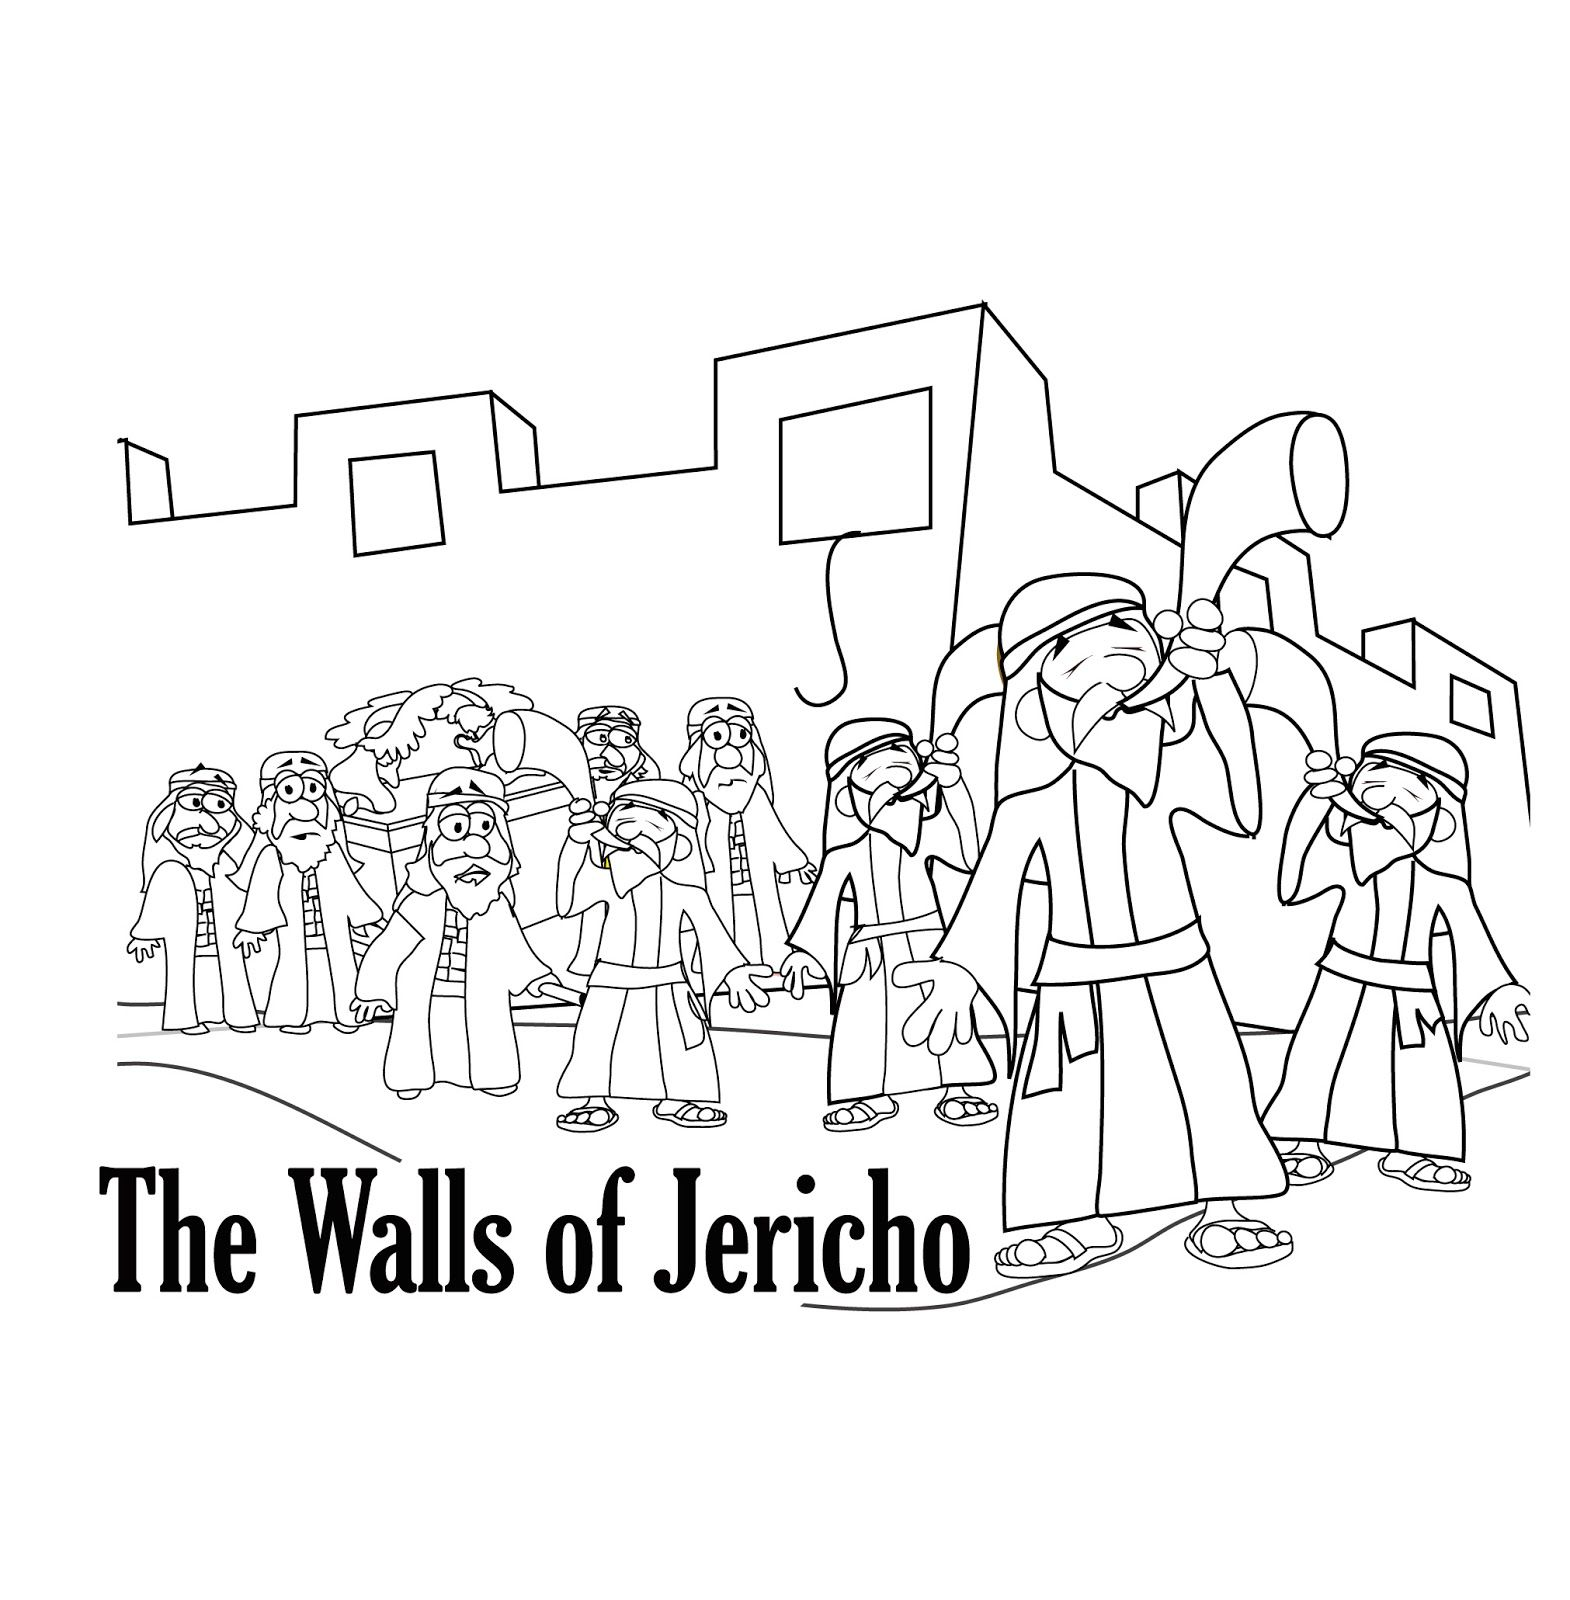 jericho wall coloring pages - photo#2